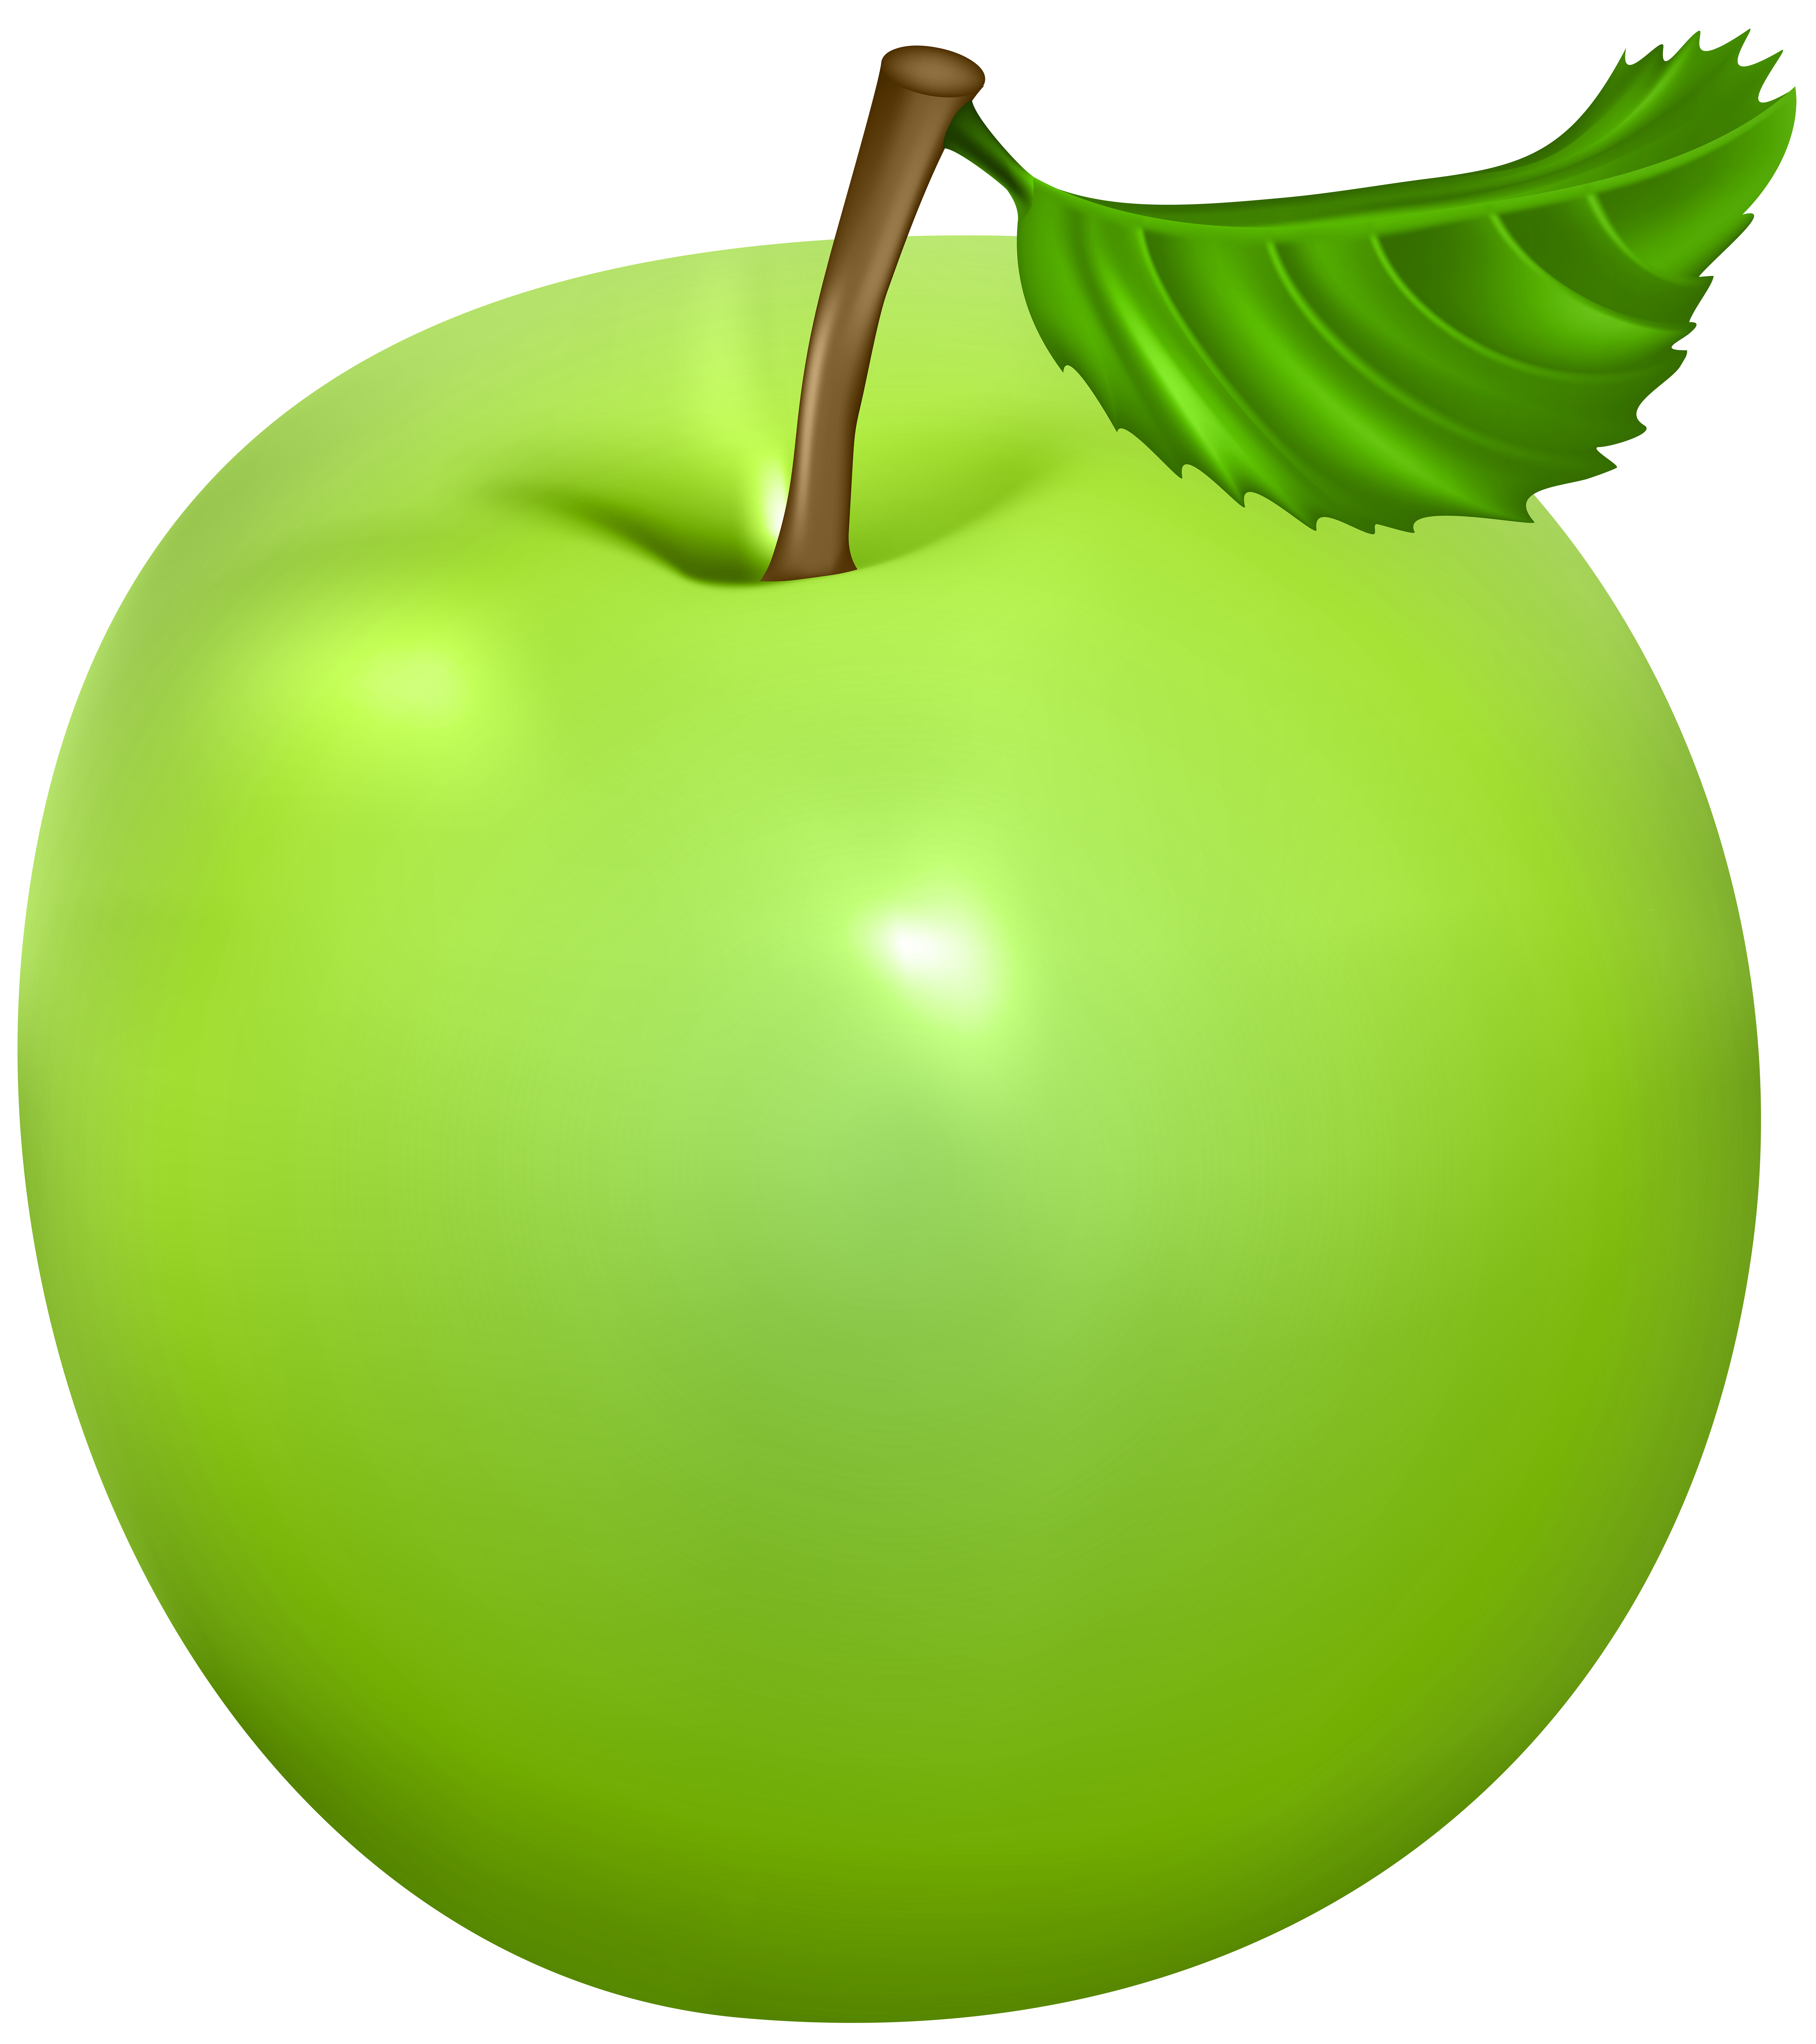 Apples and money clipart vector transparent library Green Apple PNG Clip Art Image - Best WEB Clipart vector transparent library